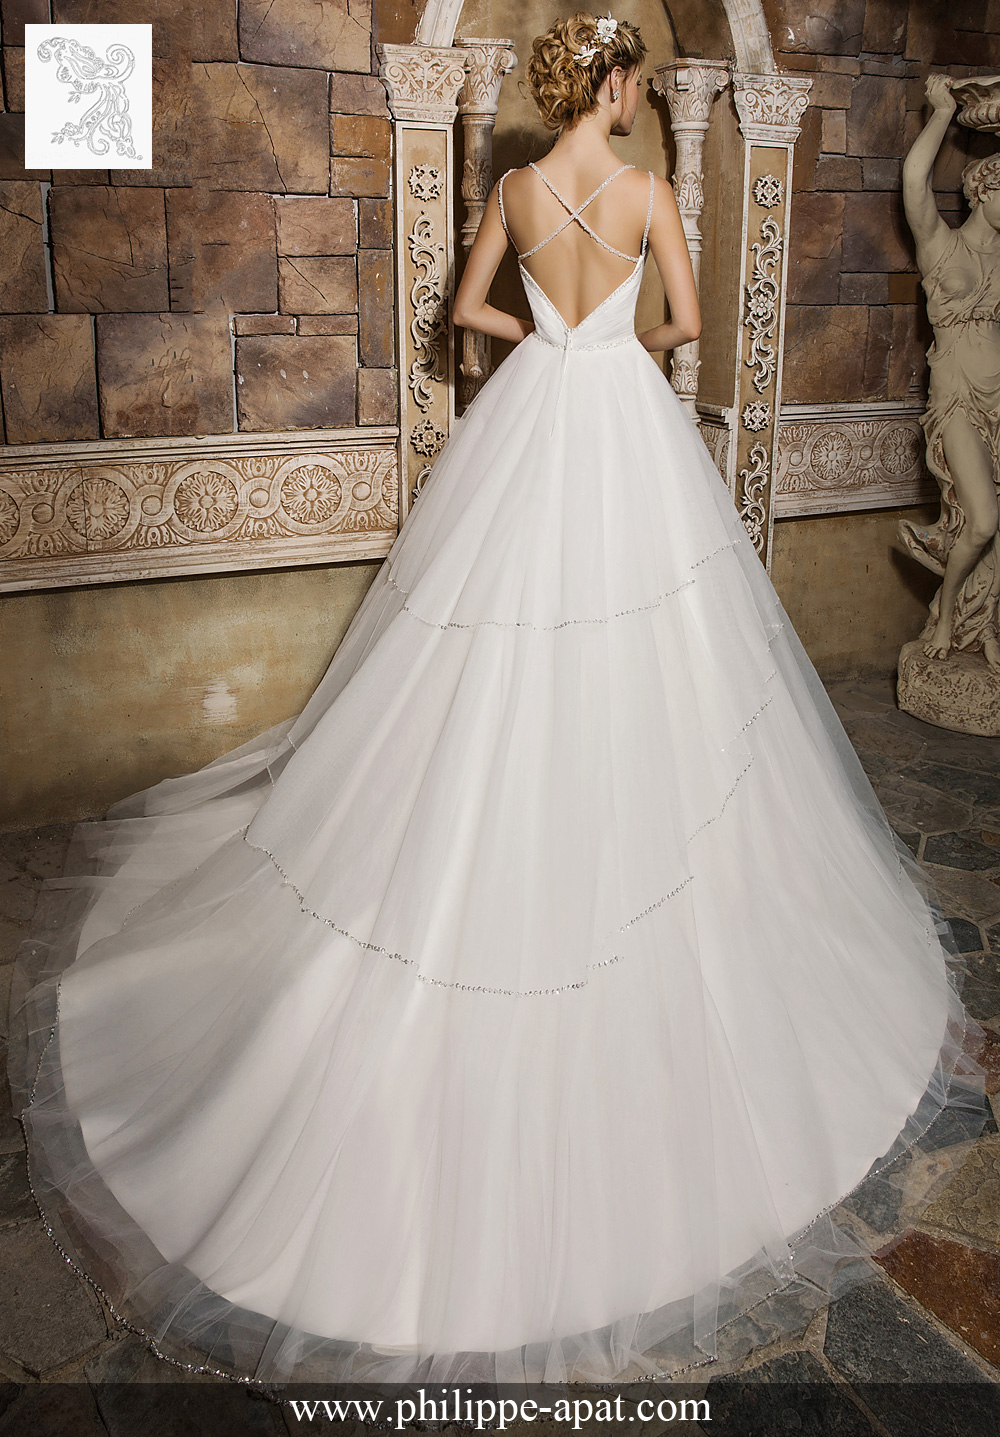 Robe de mariee blanche 2017 mariage Philippe Apat